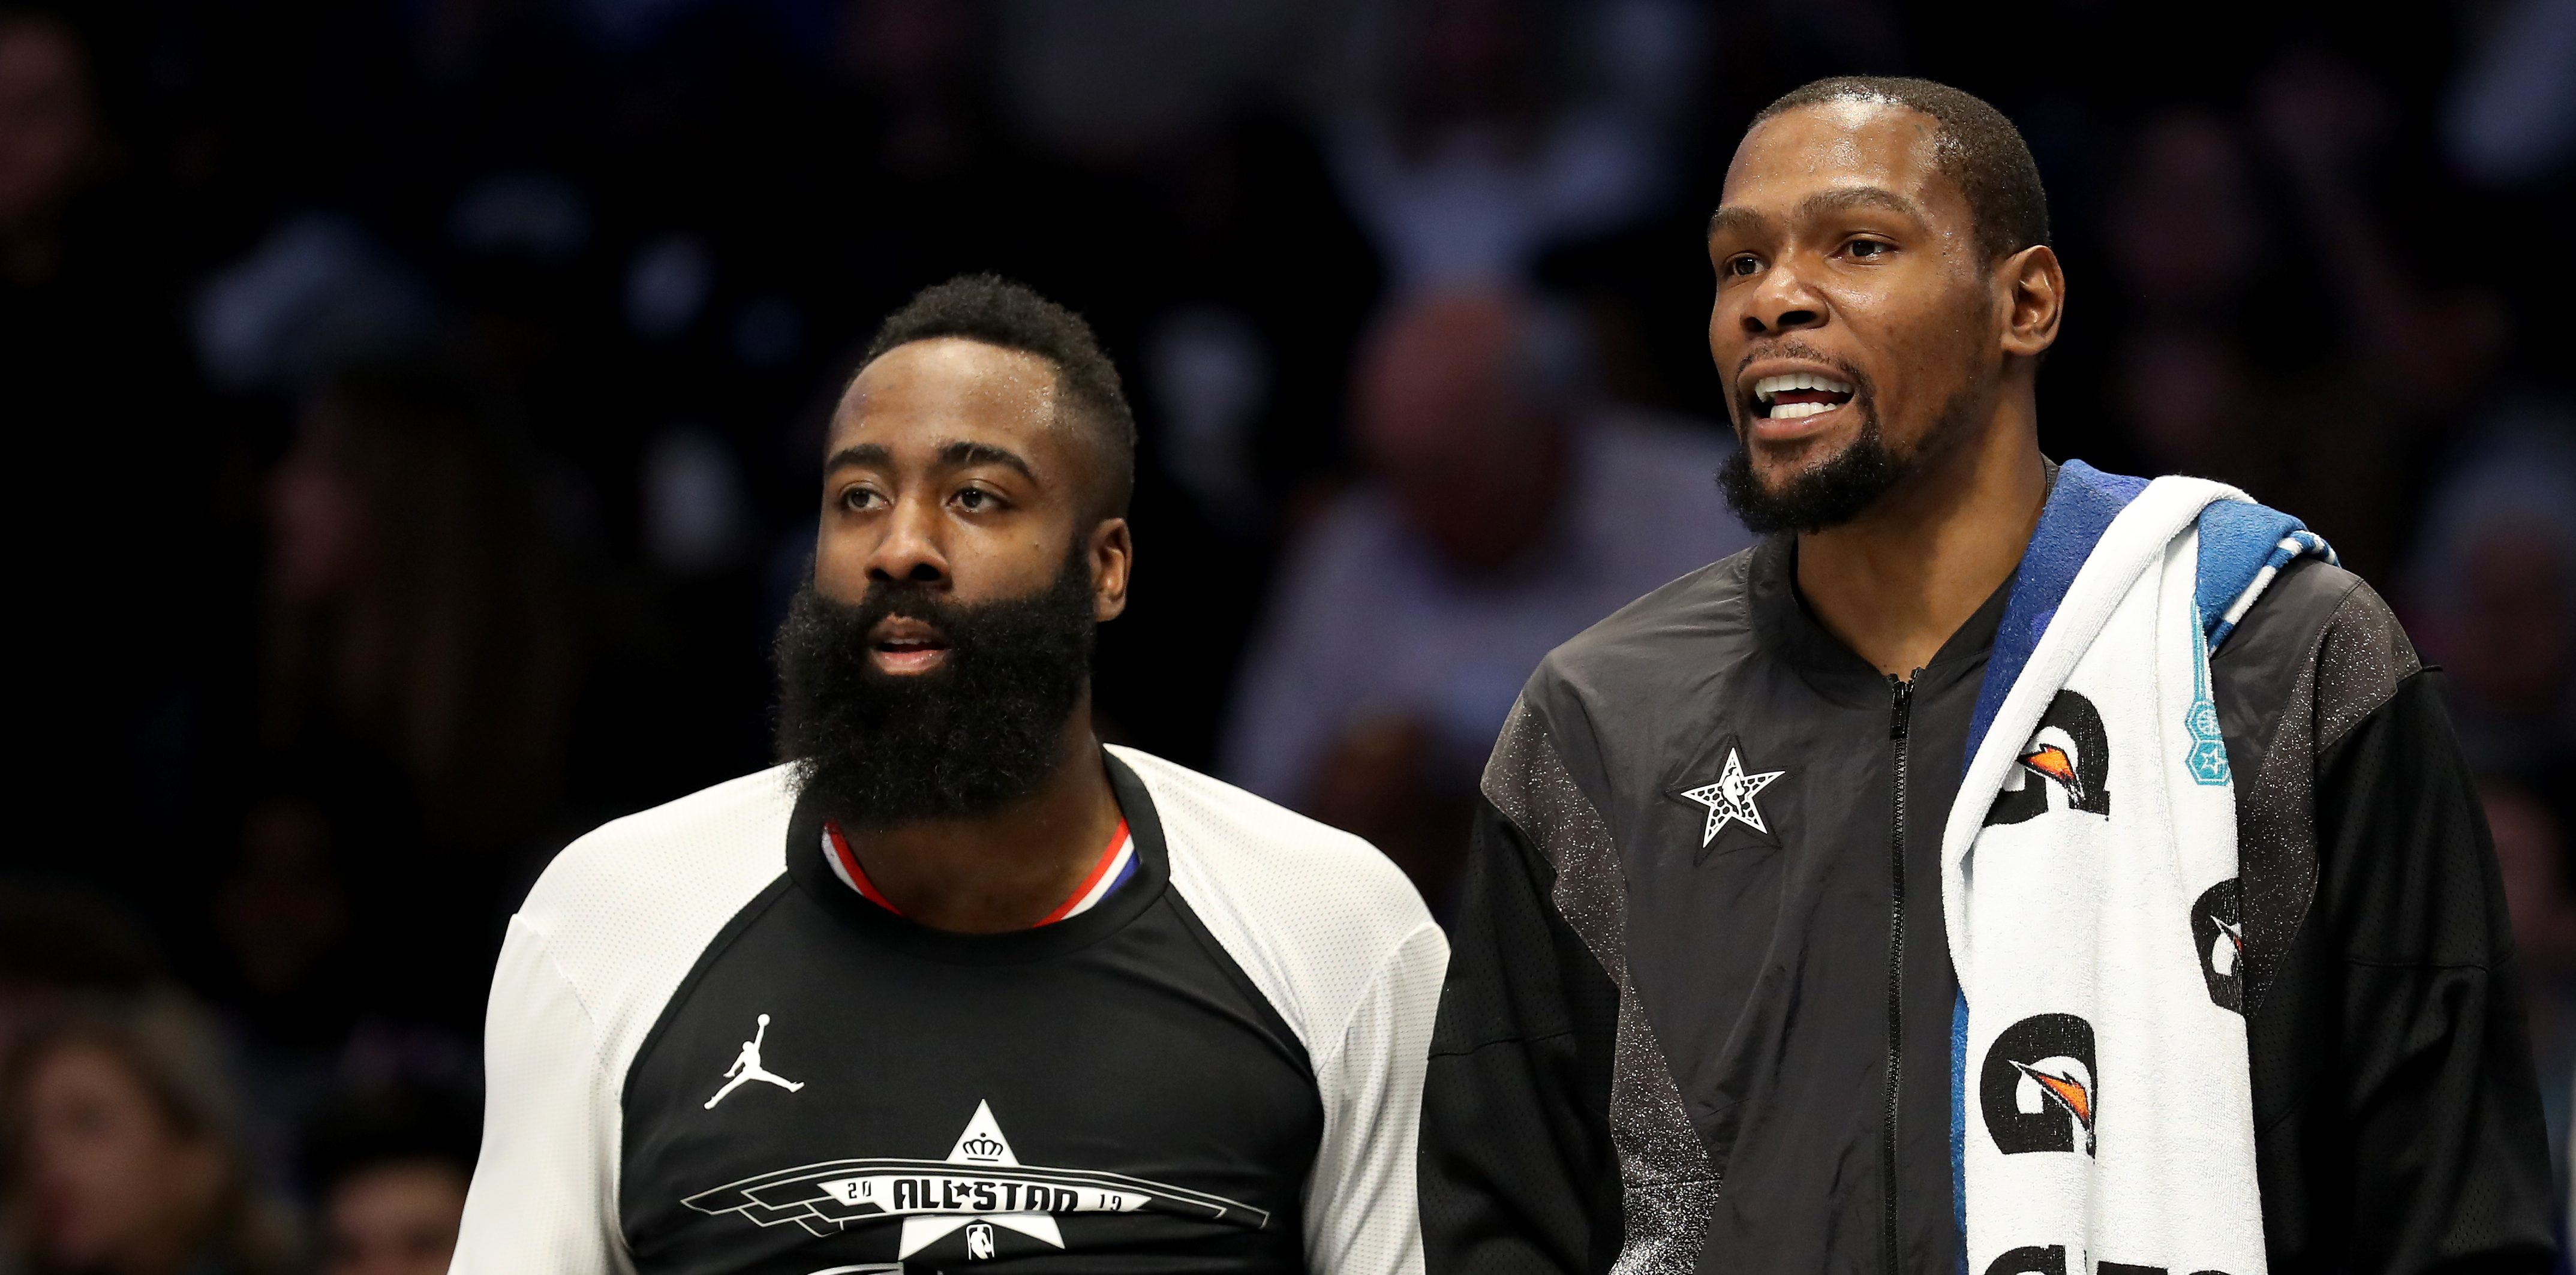 CHARLOTT, North Carolina - February 17: James Harden No. 13 of the Houston Rockets, teammate Kevin Durant No. 35 of the Golden State Warriors and Team LeBron watch from the bench during the NBA All-Star Game as part of the 2019 NBA League 2019. Star Weekend At the Spectrum Center on February 17, 2019 in Charlotte, North Carolina.  Note to the user: The user expressly acknowledges and agrees, by downloading and / or using this image, that the user accepts the terms and conditions of the Getty Images License Agreement.